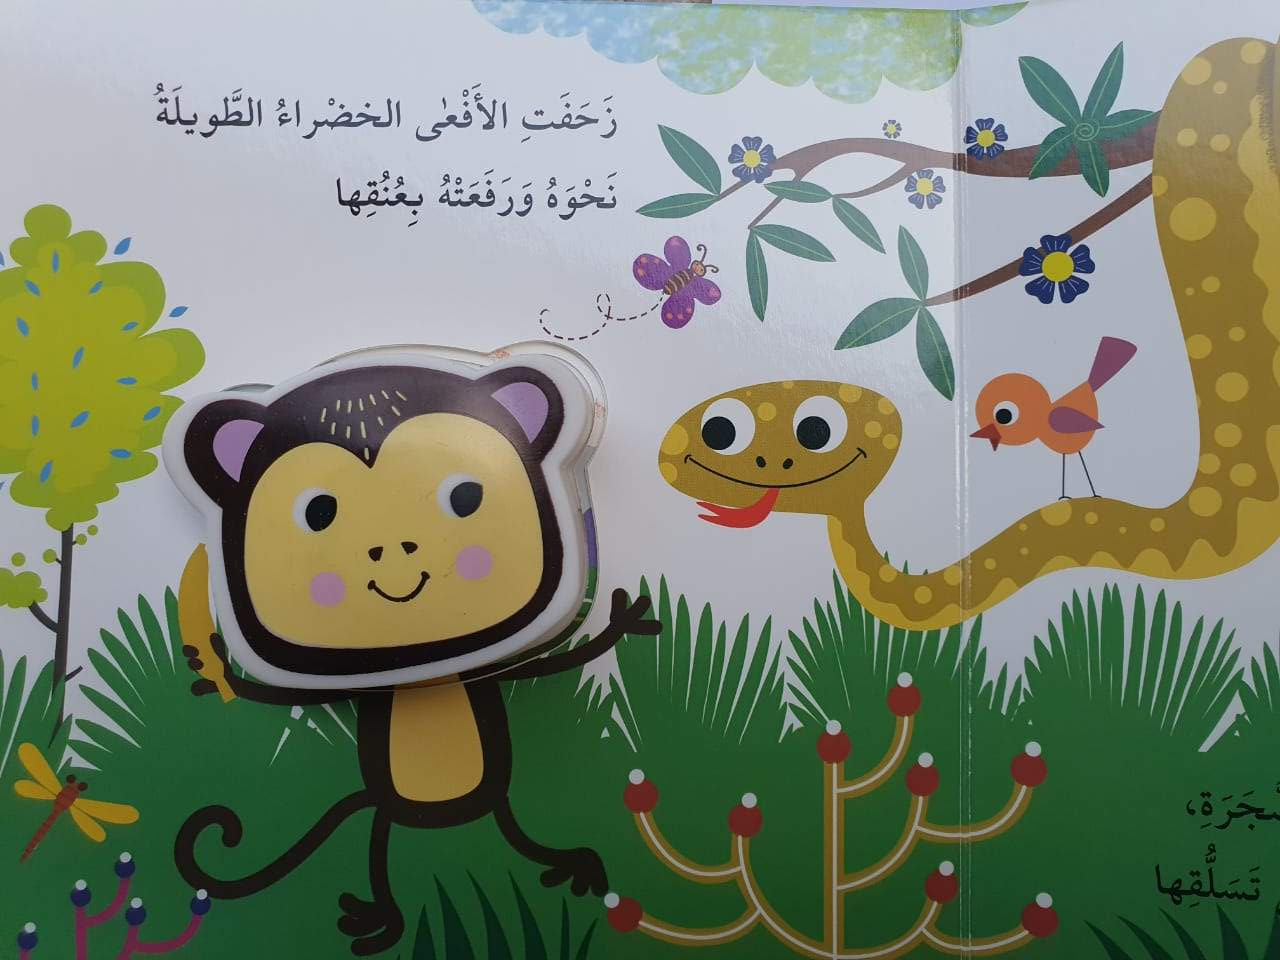 Squeaky Monkey/ القرد